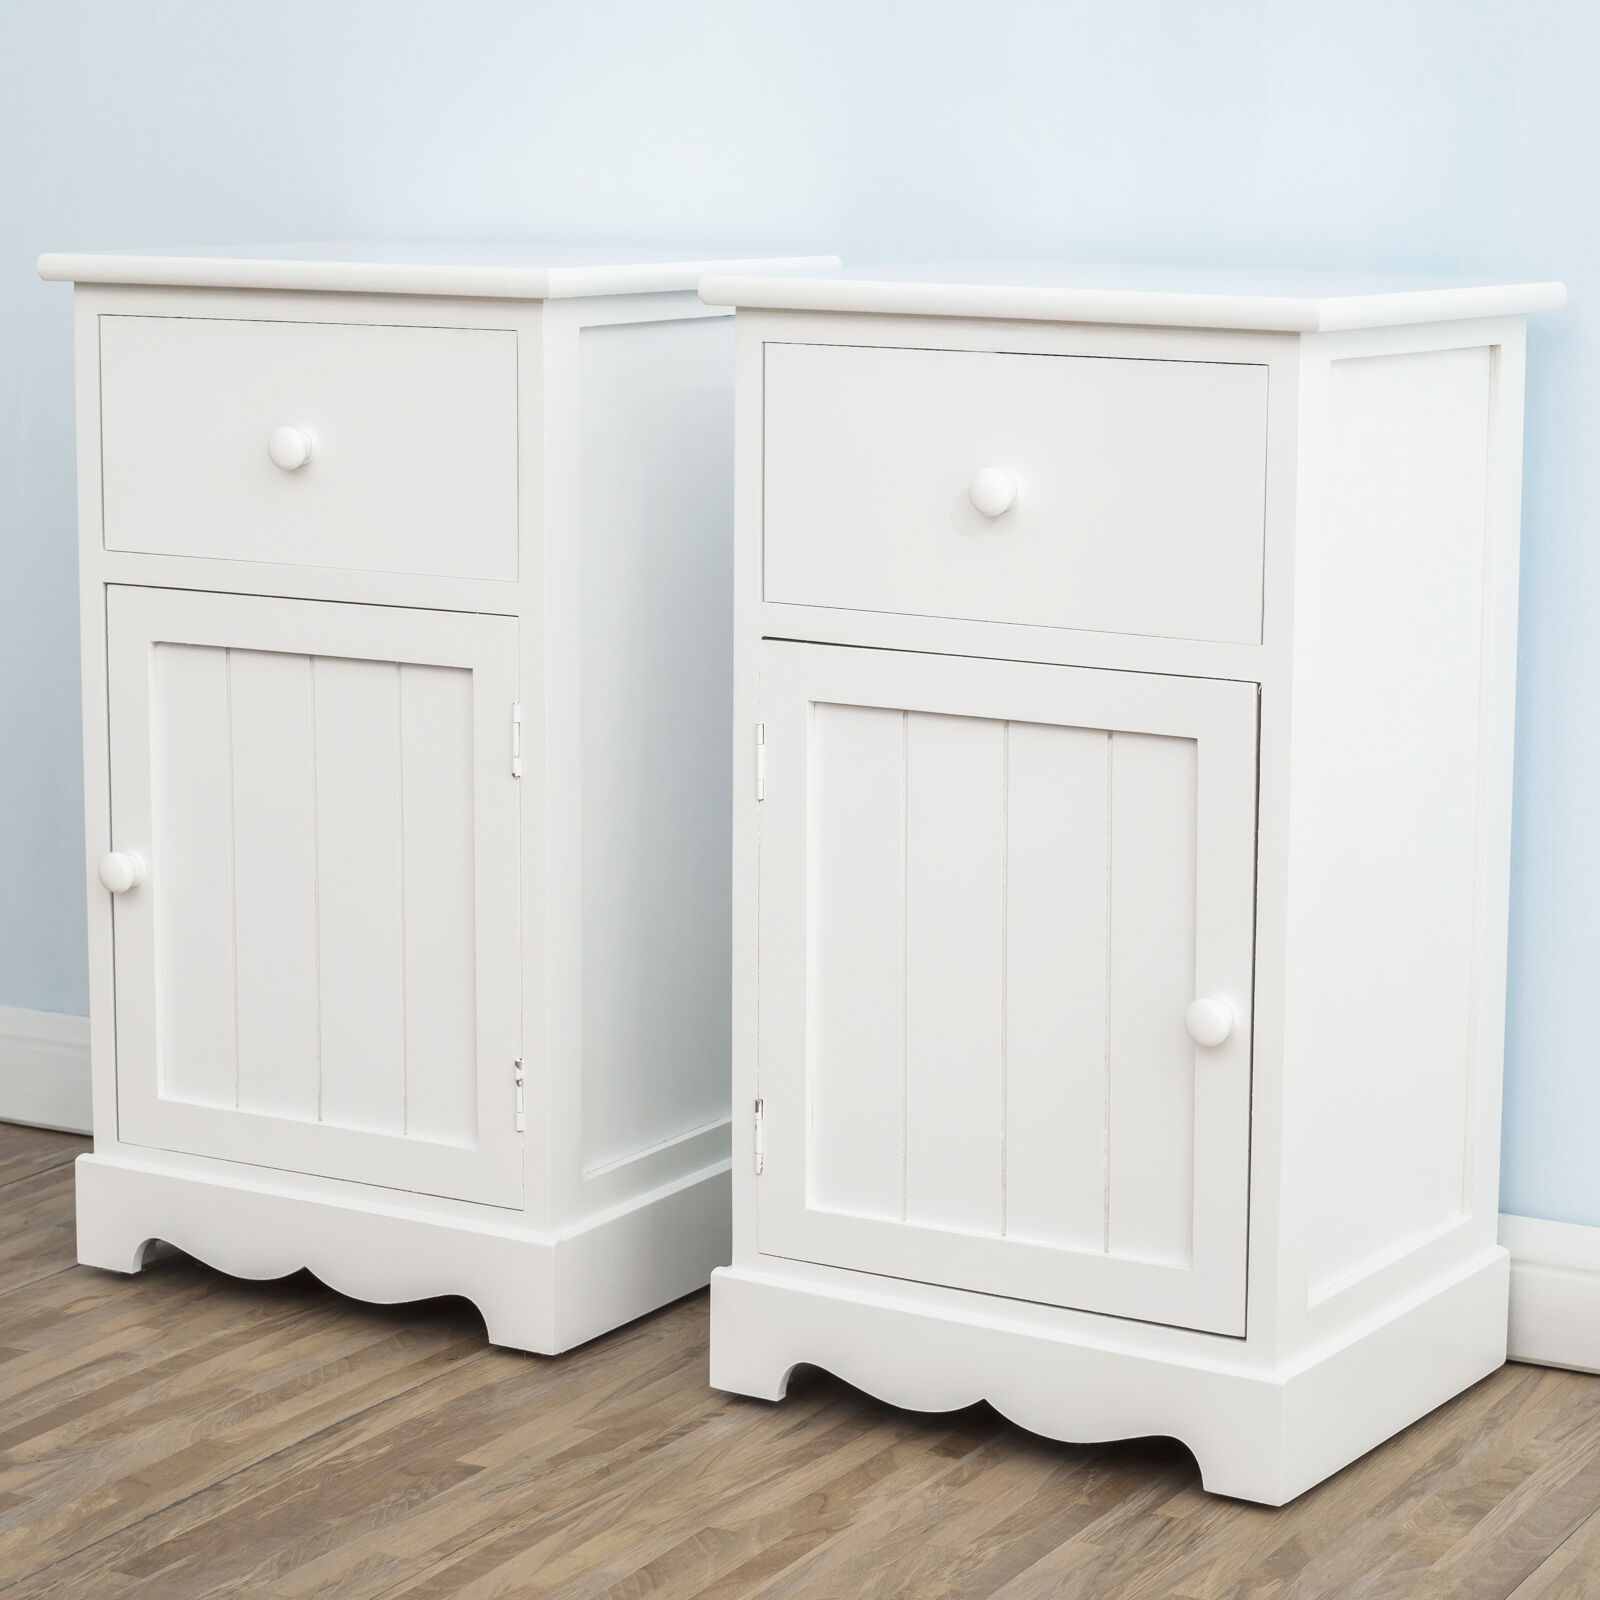 Pair of white groove door bedside tables drawers storage - Bedroom storage cabinets with drawers ...